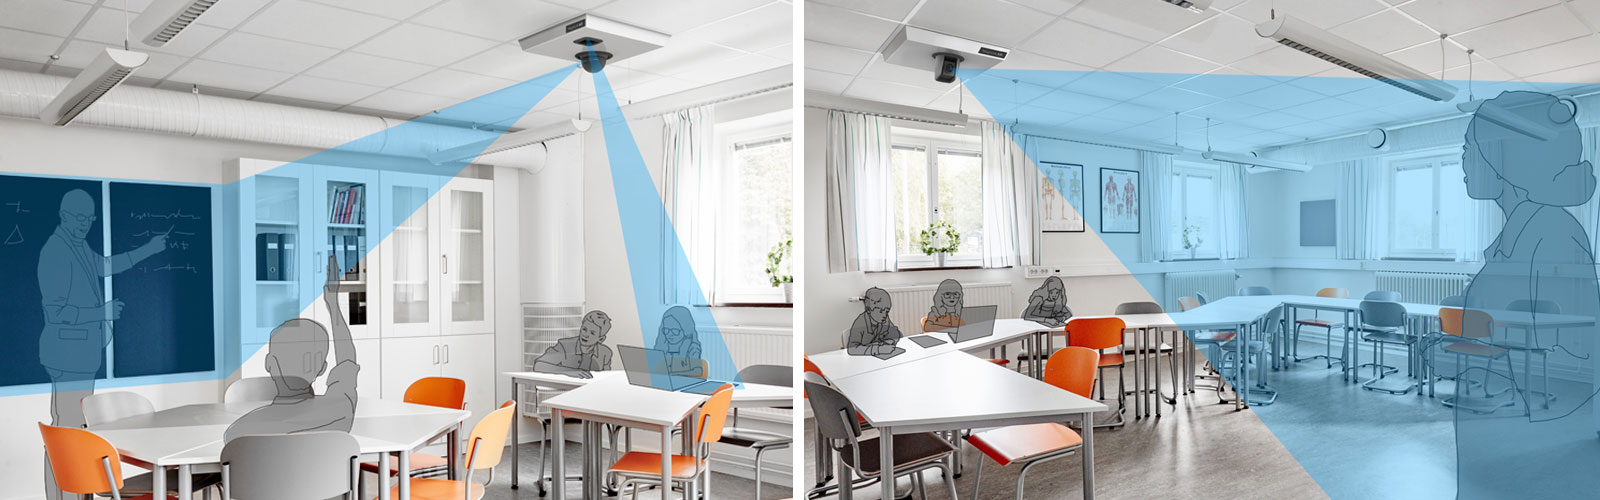 Image of MagniLink AIR in the classroom